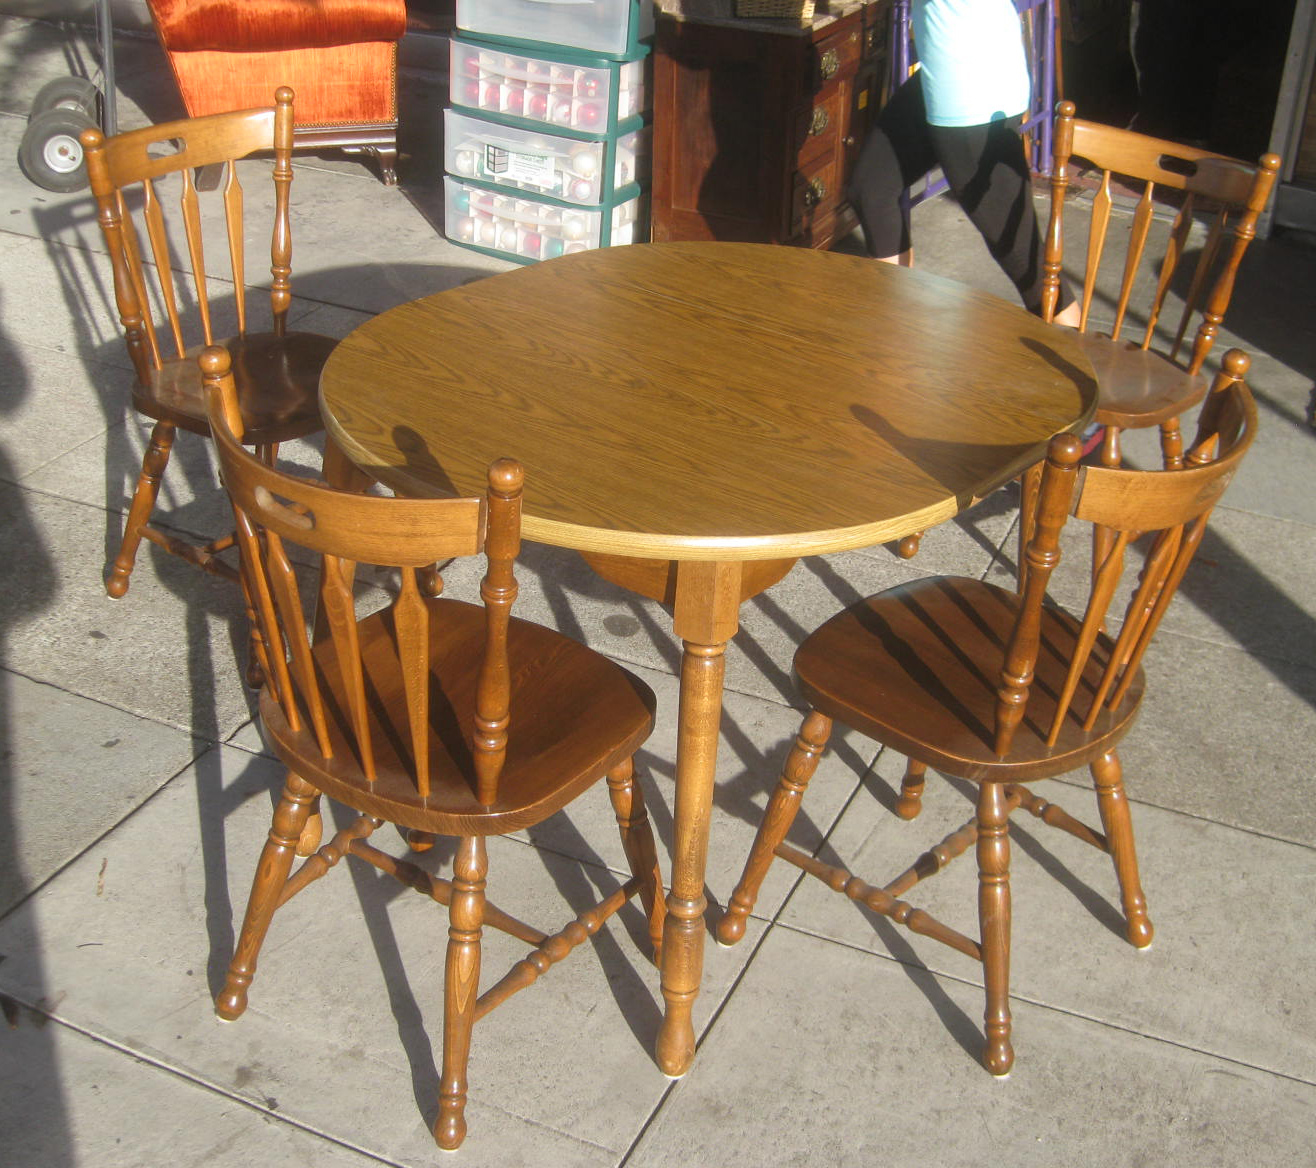 Kitchen Tables Chairs: UHURU FURNITURE & COLLECTIBLES: SOLD